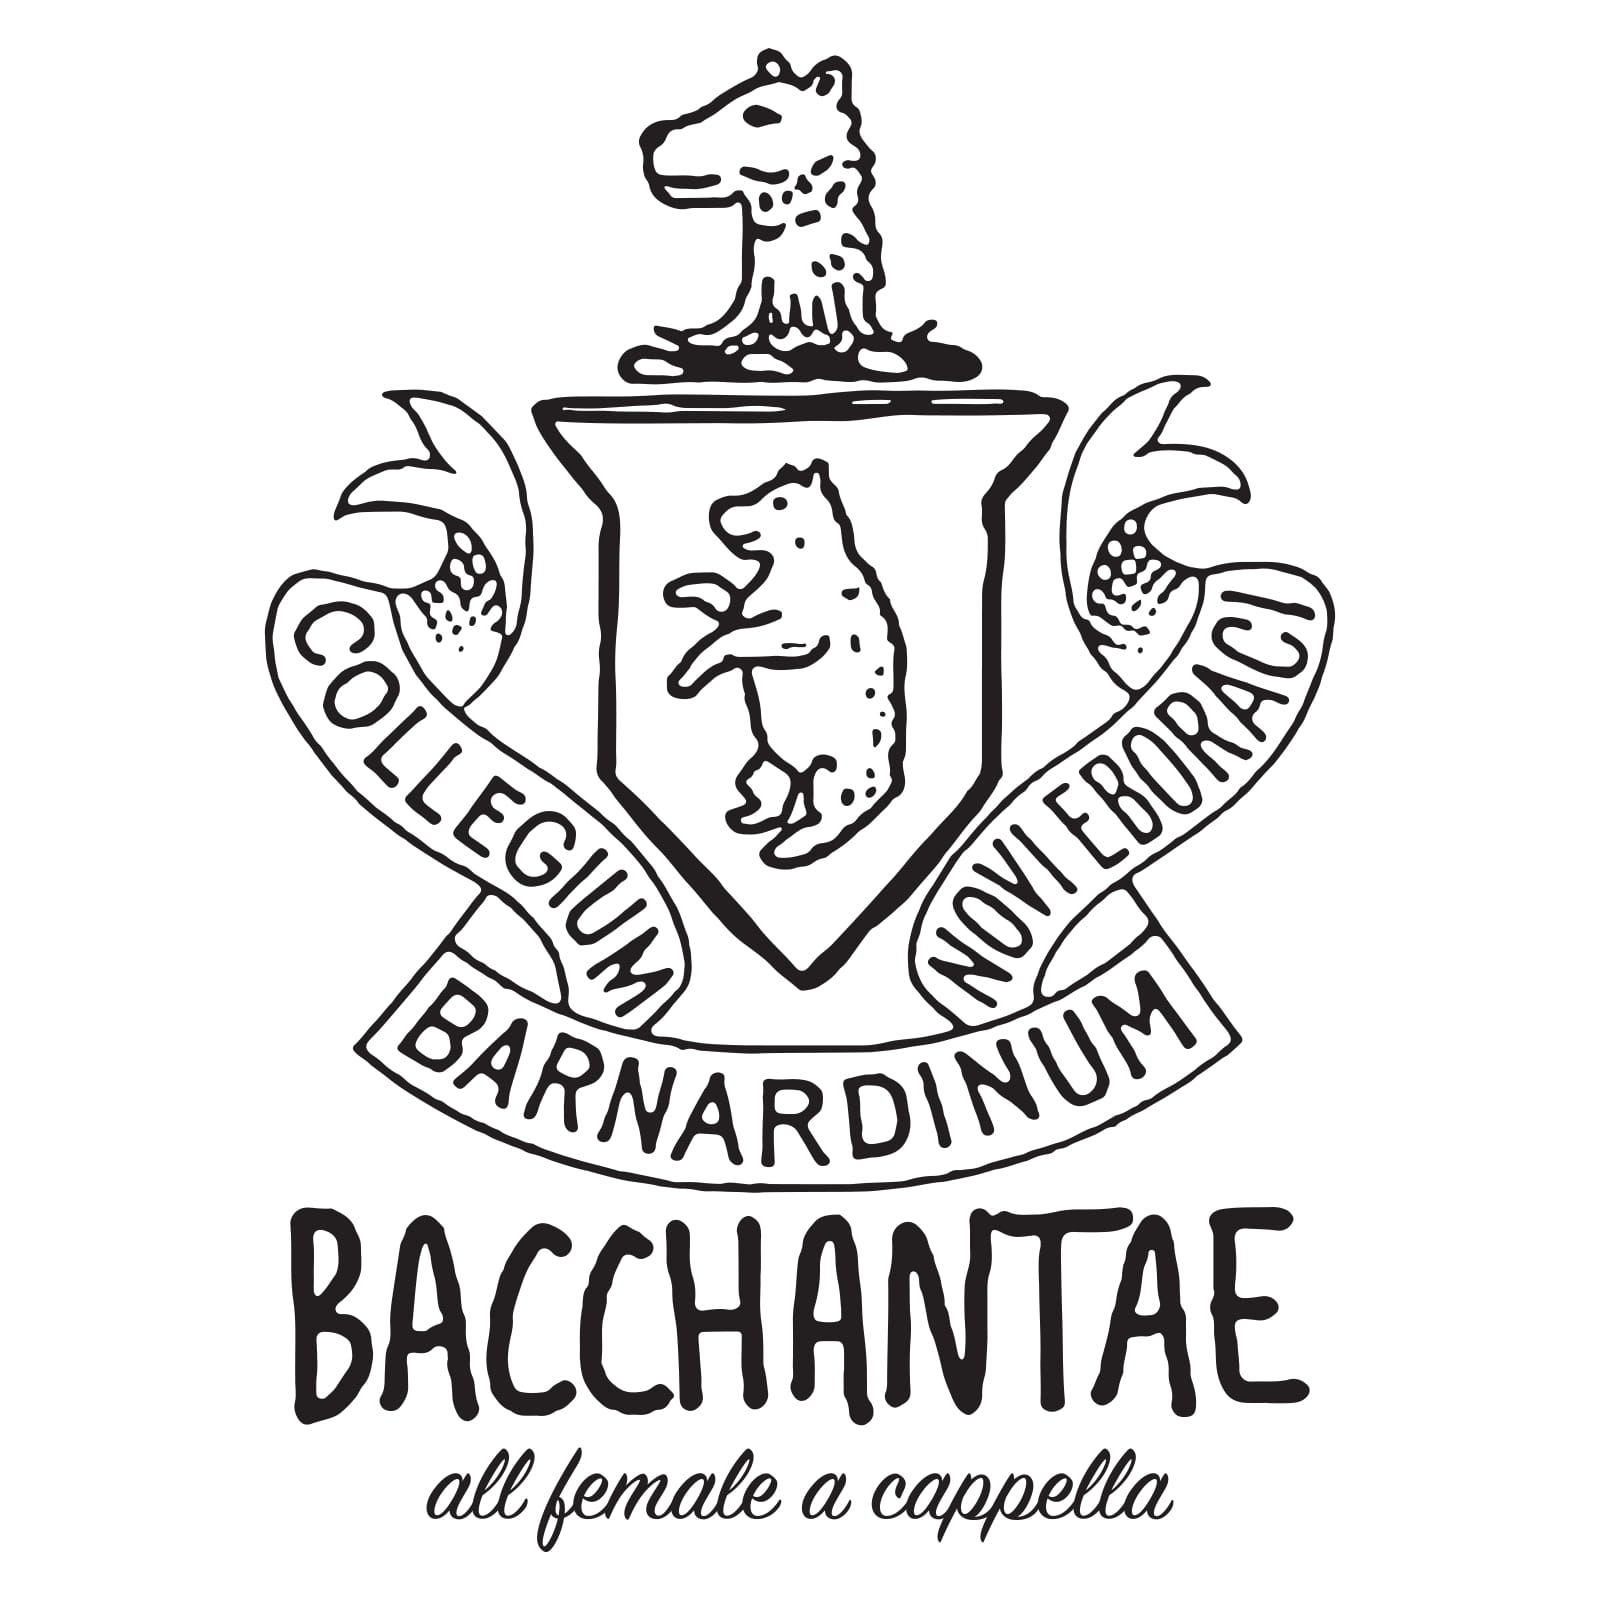 Meet Bacchantae Current Members